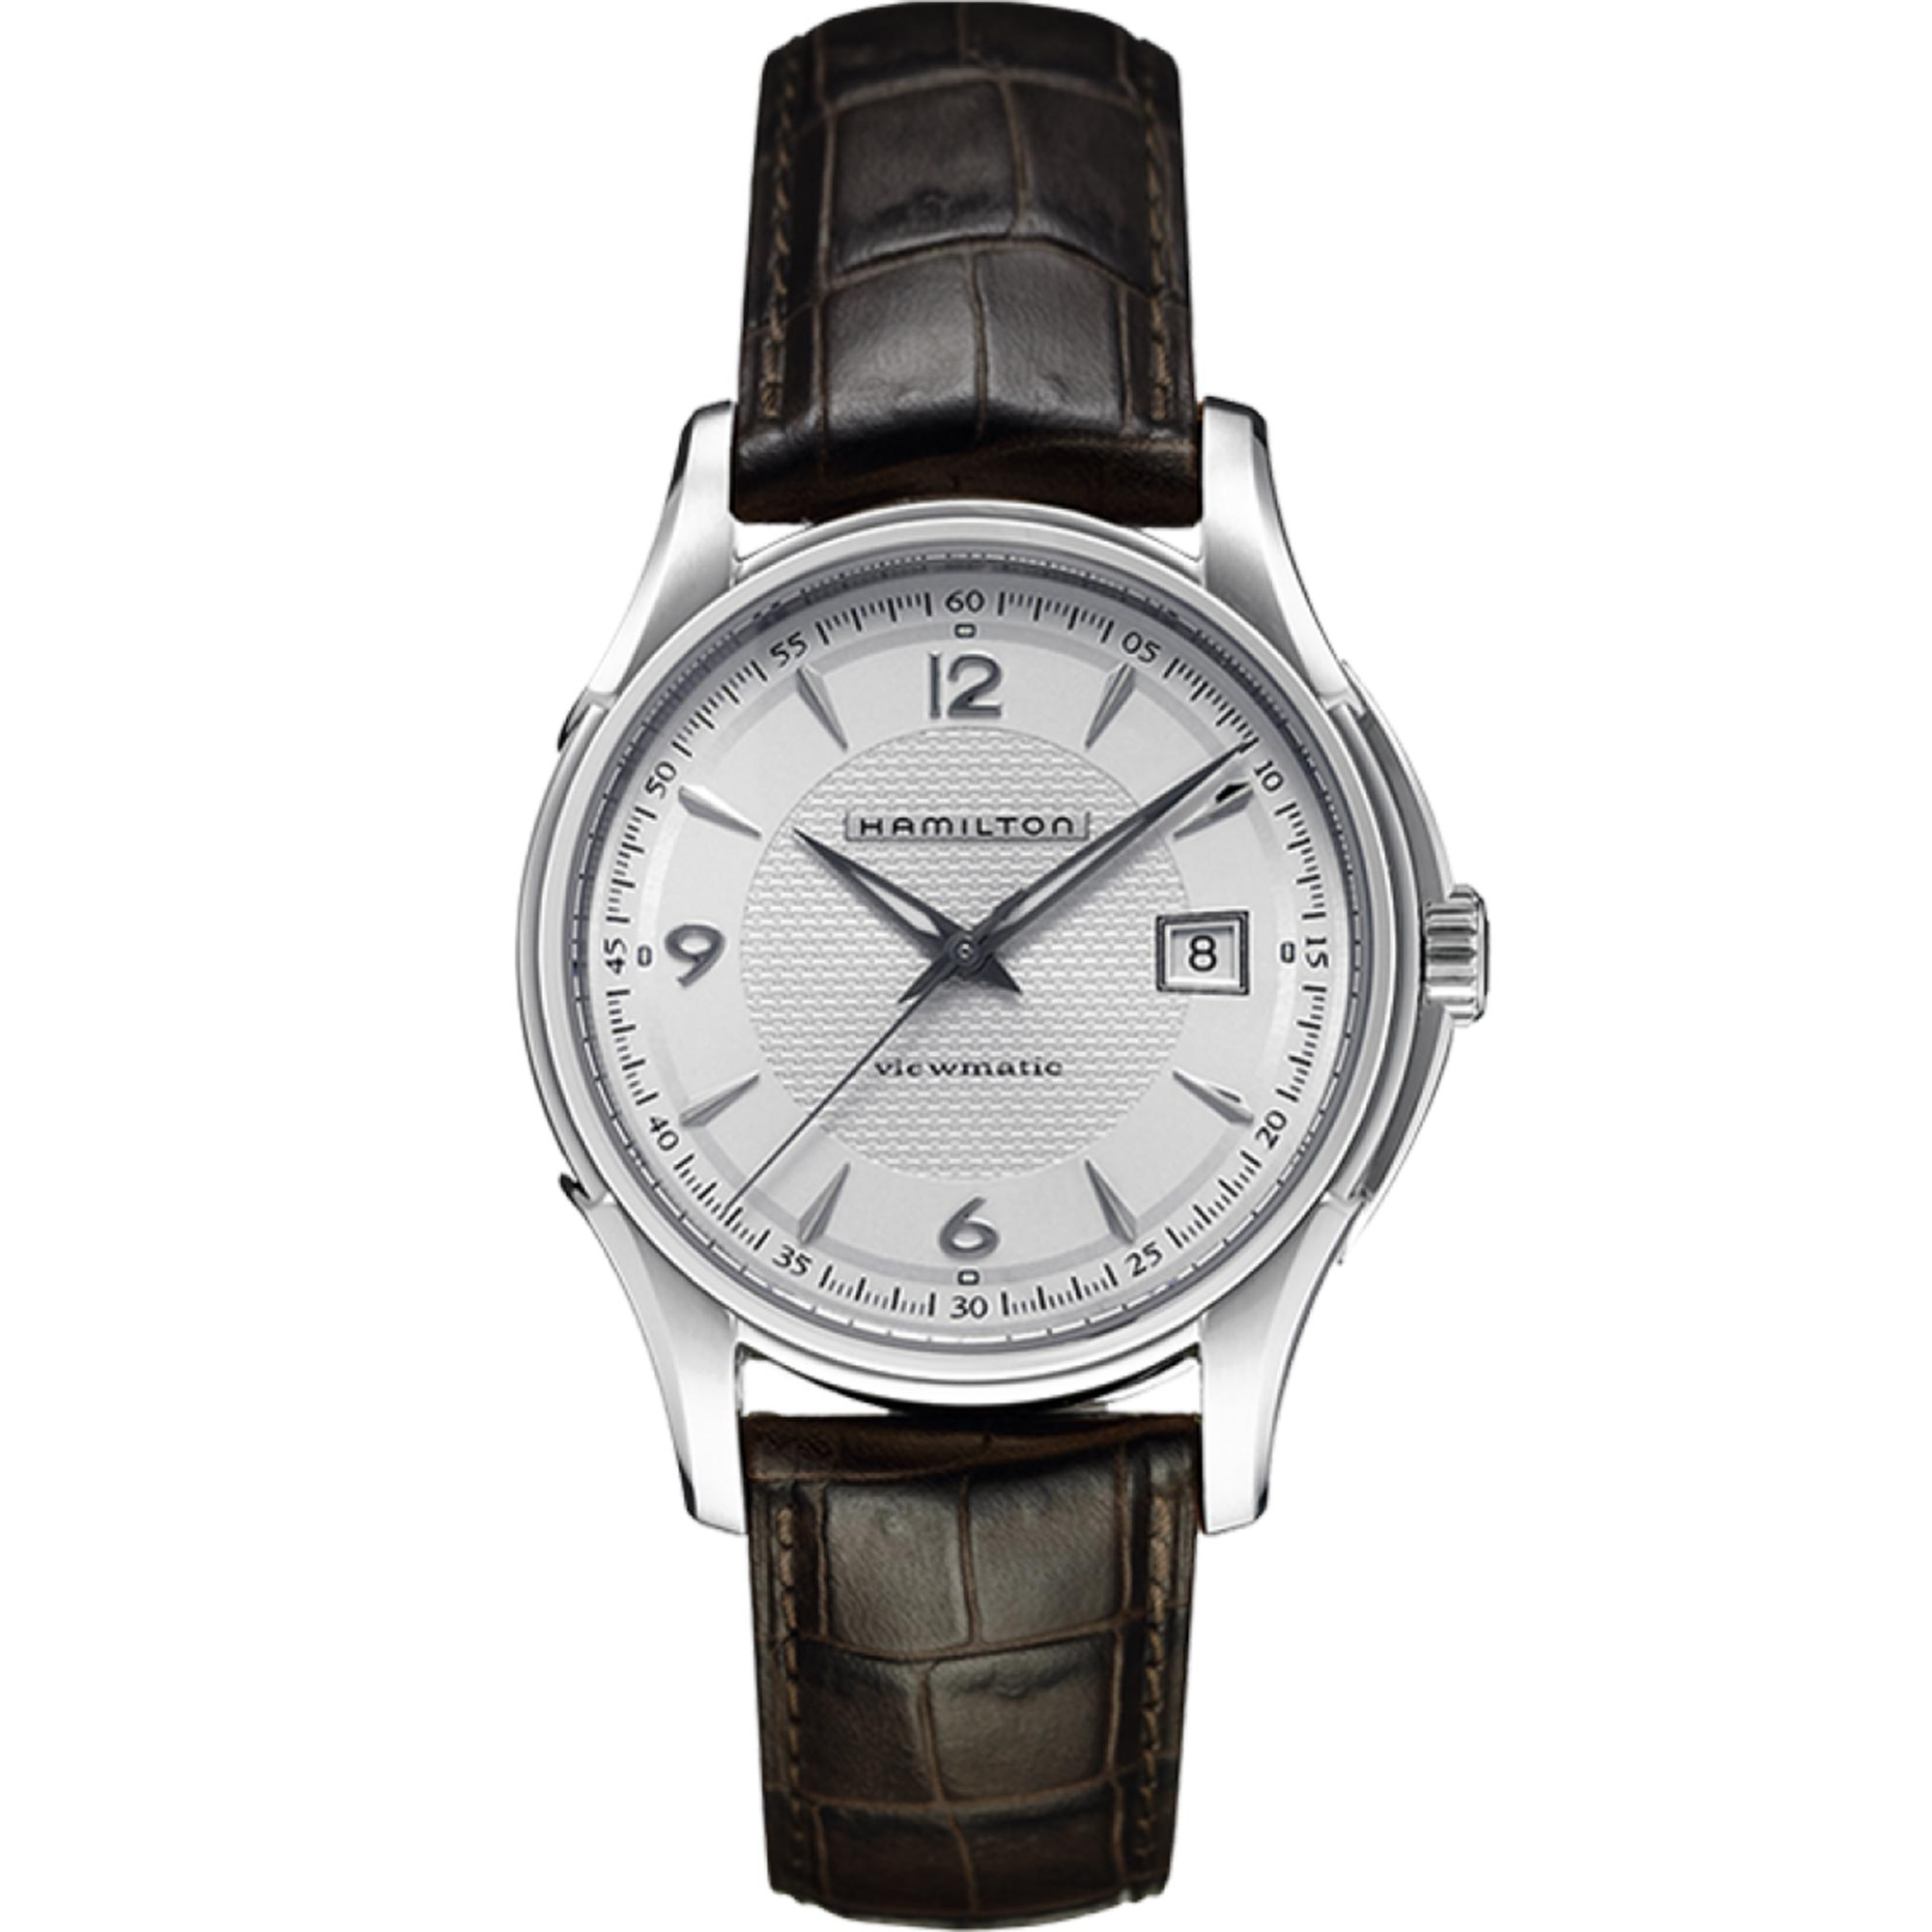 Hamilton Jazzmaster Viewmatic Automatic Silver Dial Brown Leather Strap Men's Watch H32515555 RRP £565